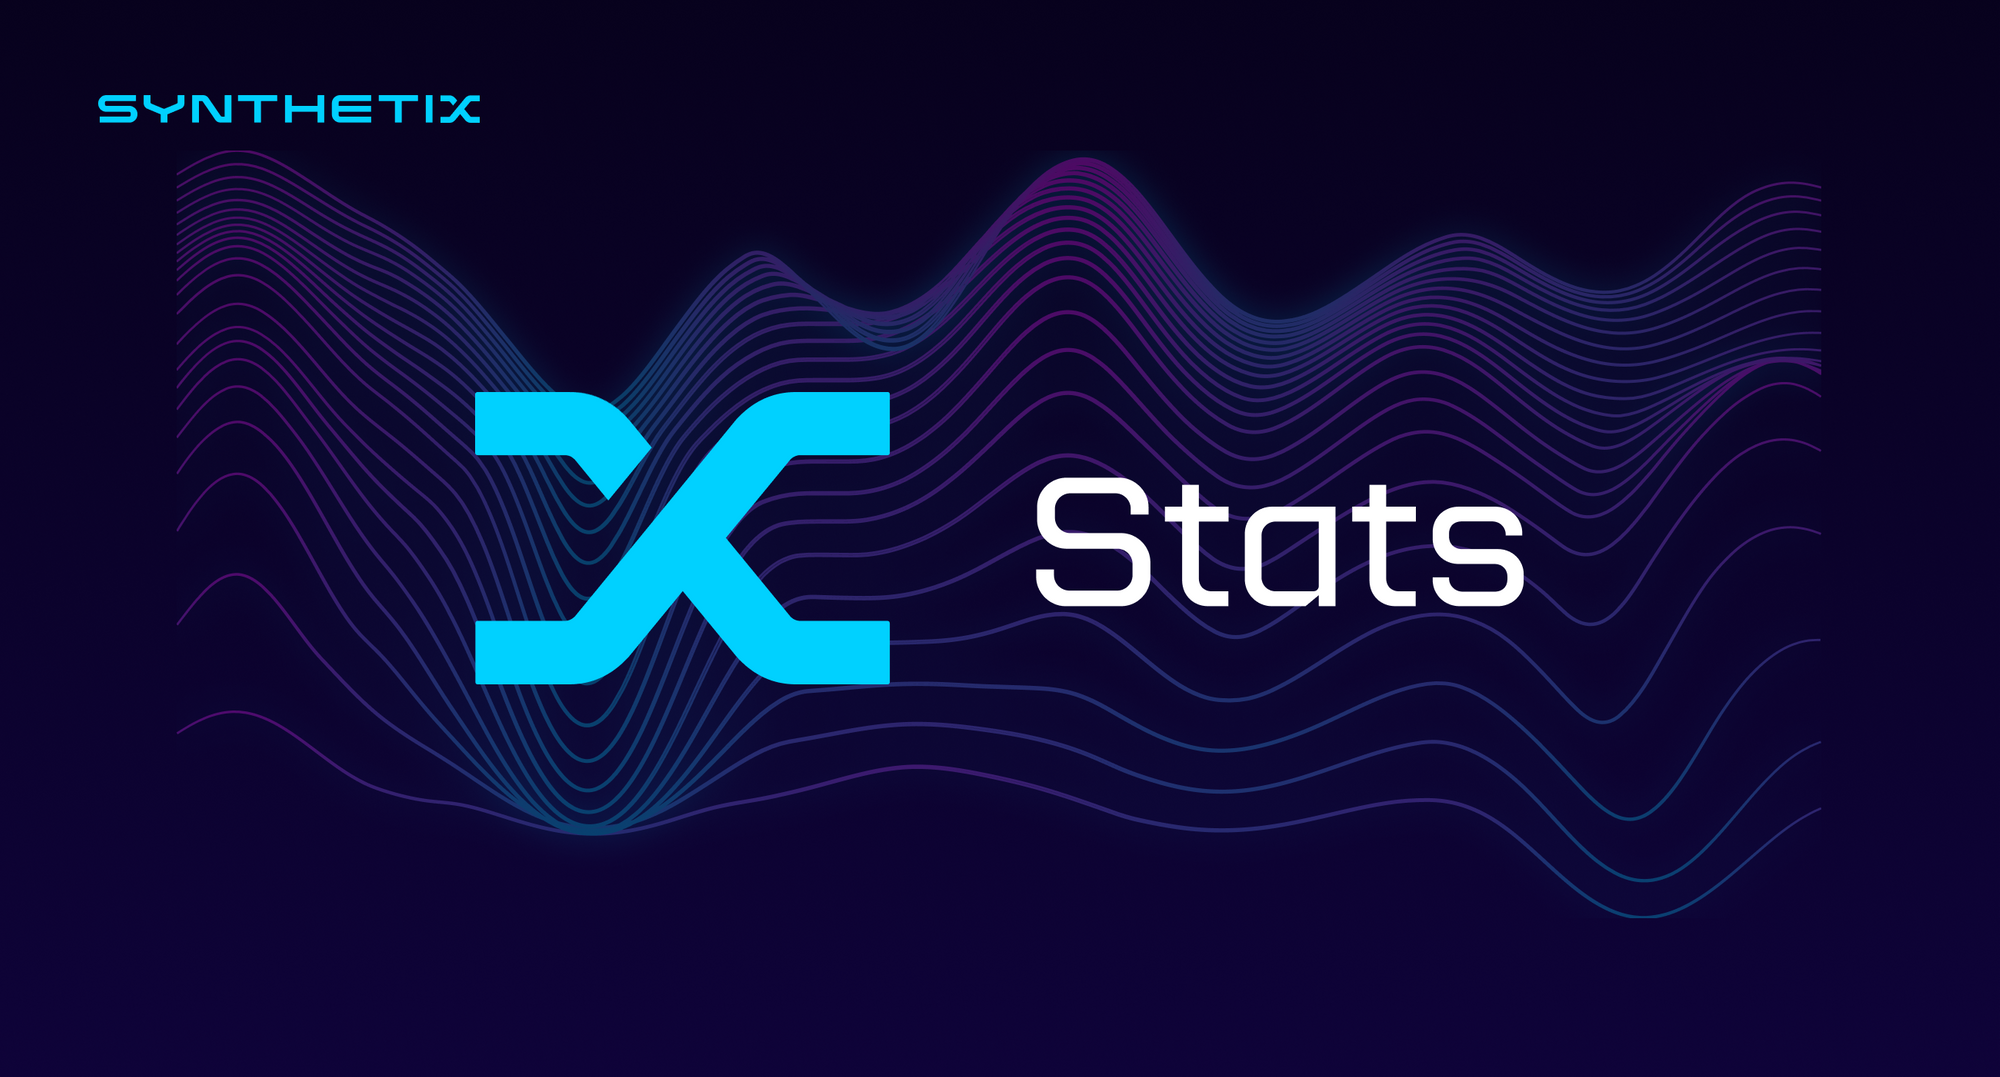 The new Synthetix Stats website is now live!